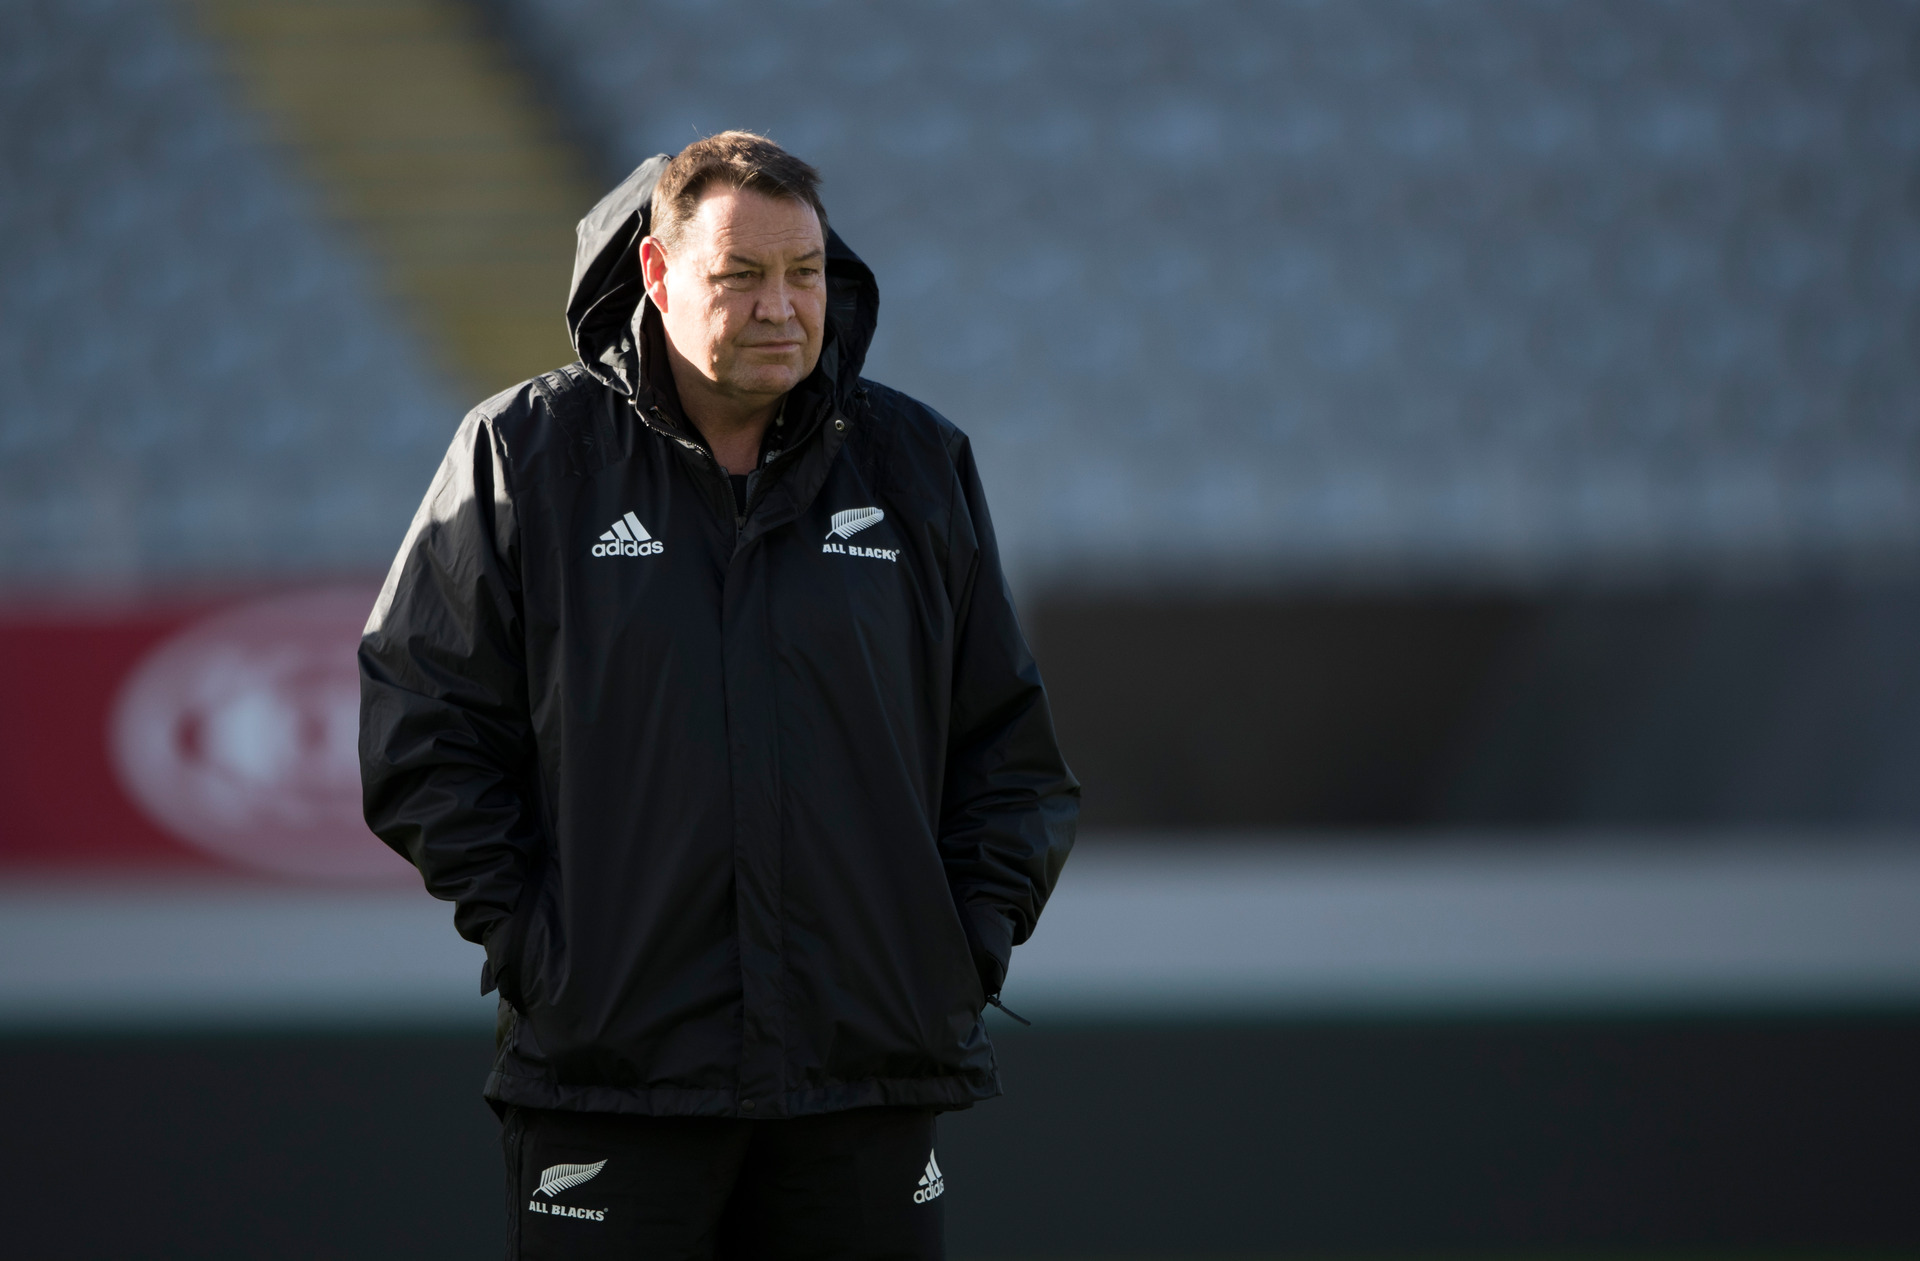 All Blacks coach Steve Hansen says Rugby World Cup fears about number of injured All Blacks misguided